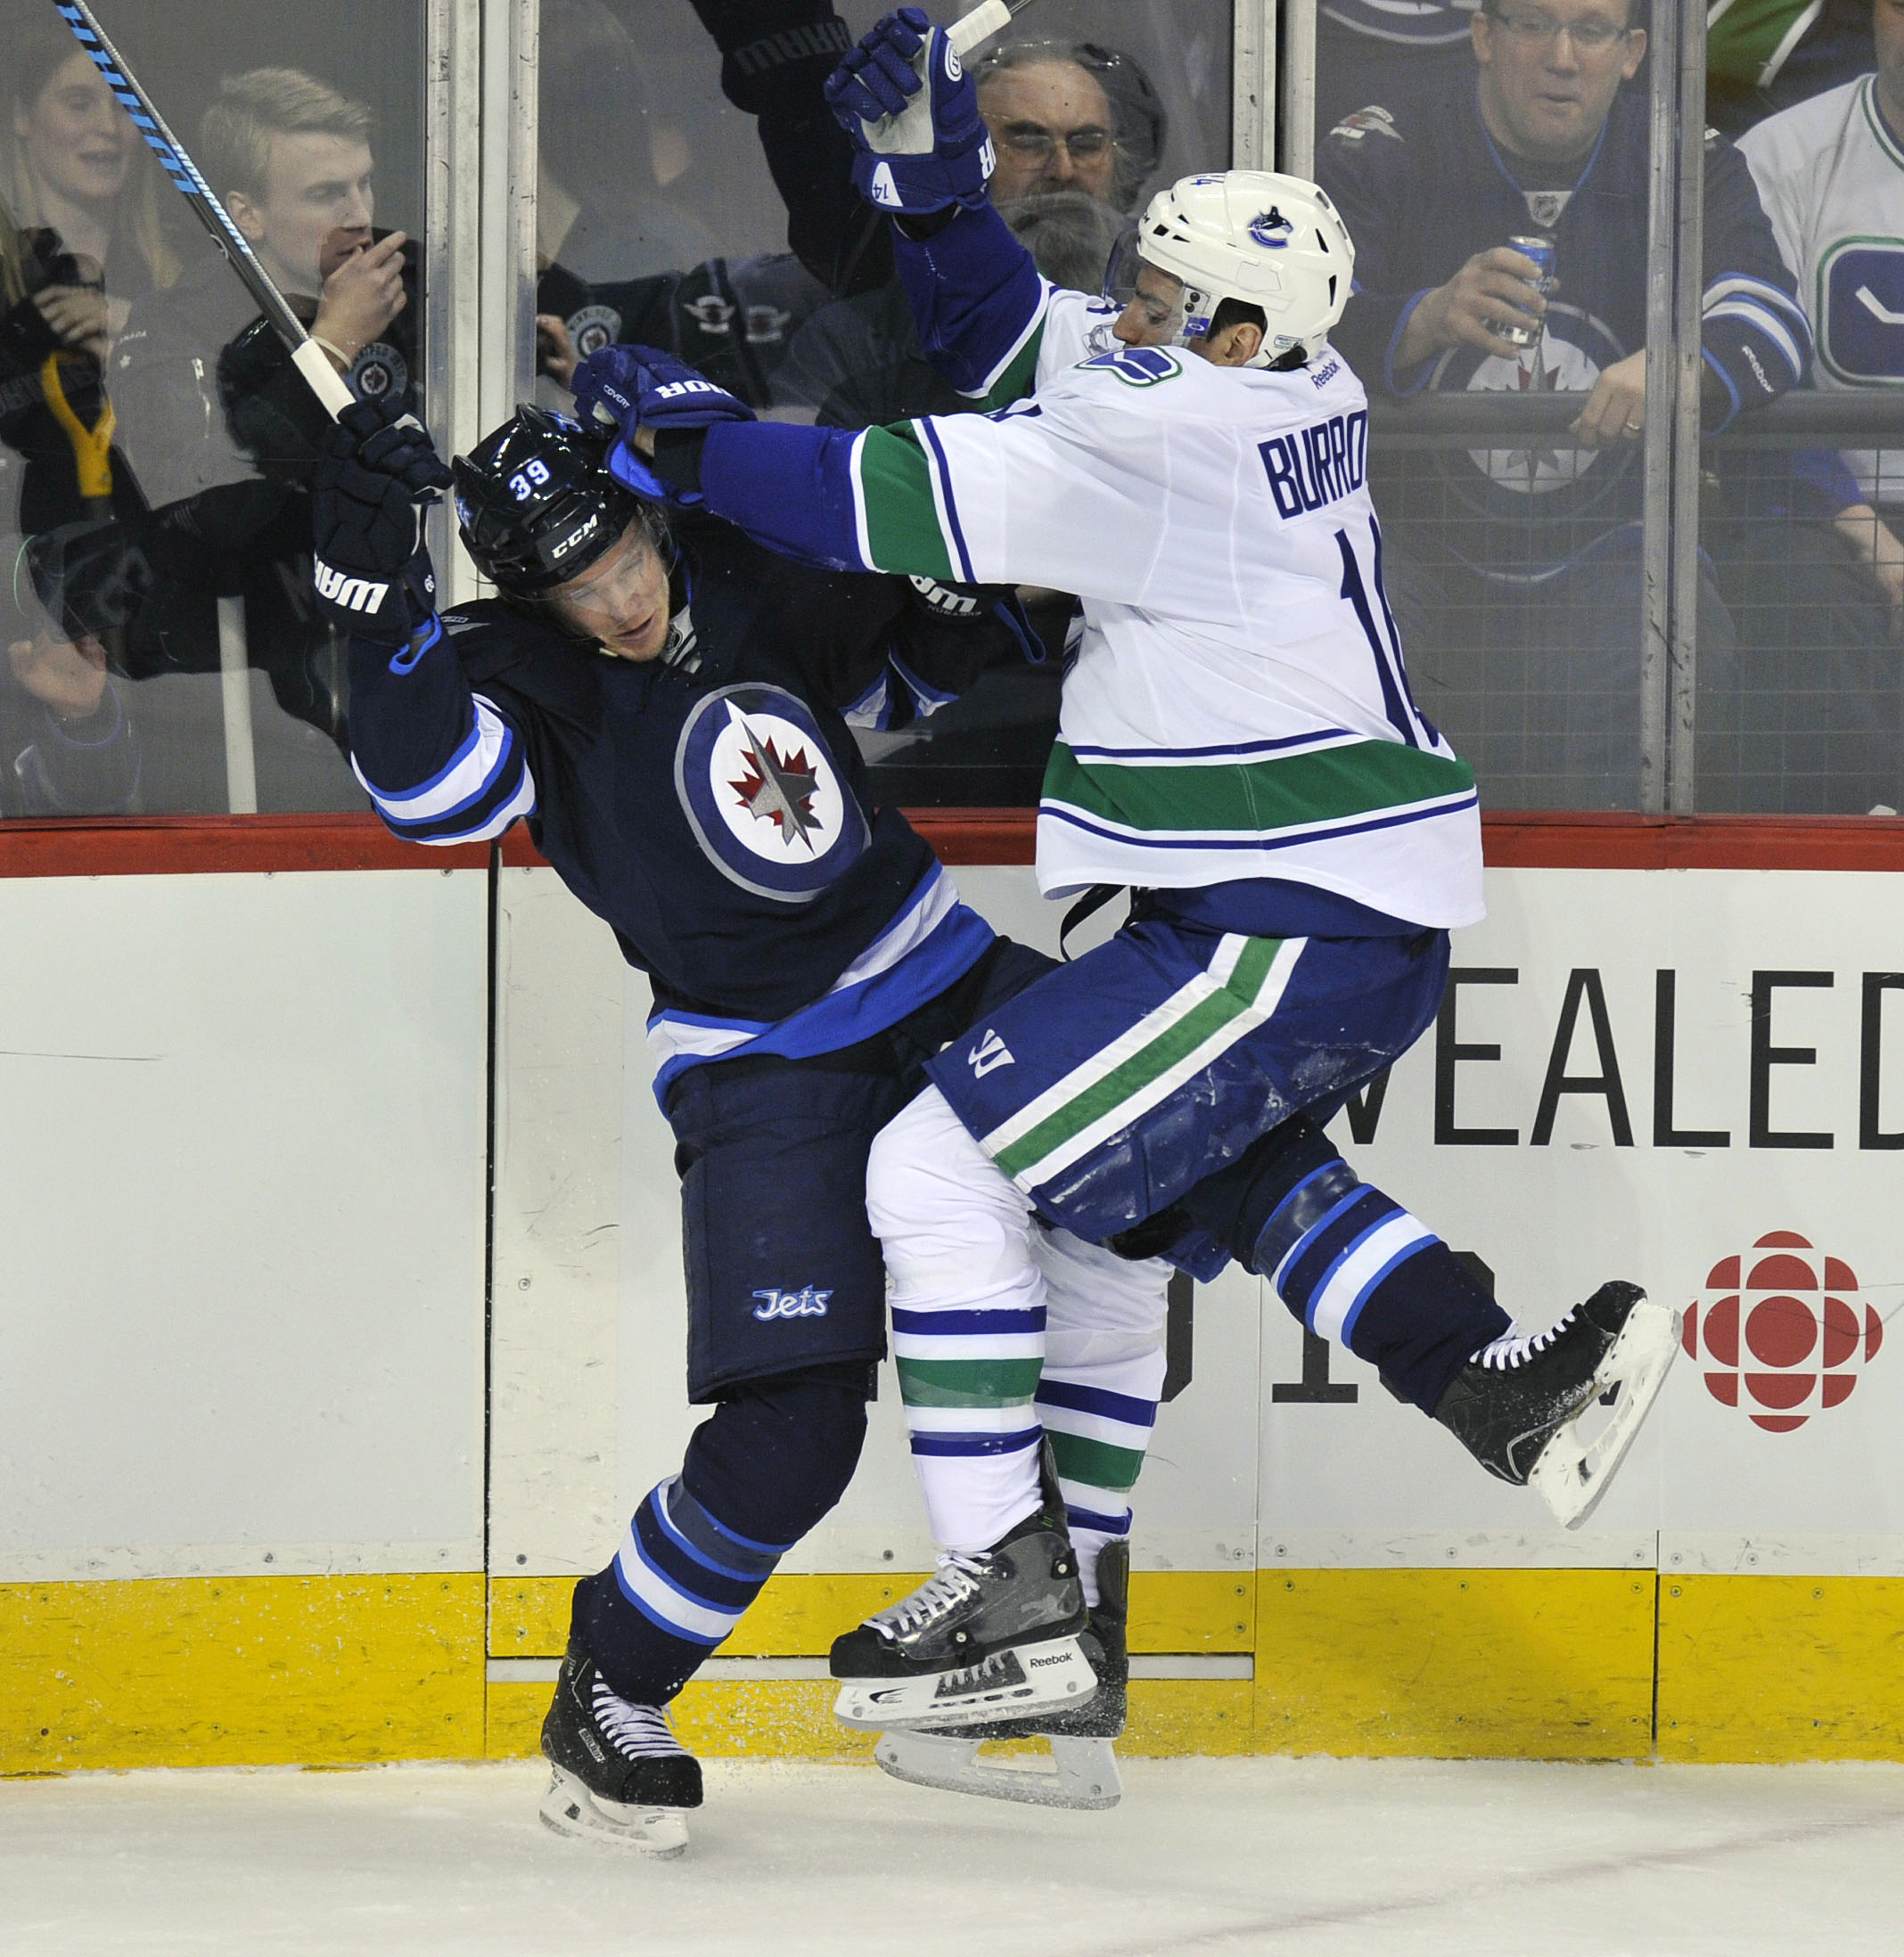 Winnipeg Jets' Tobias Endstrom runs Vancouver Canucks' Alexandre Burrows during the first period of Friday's game.